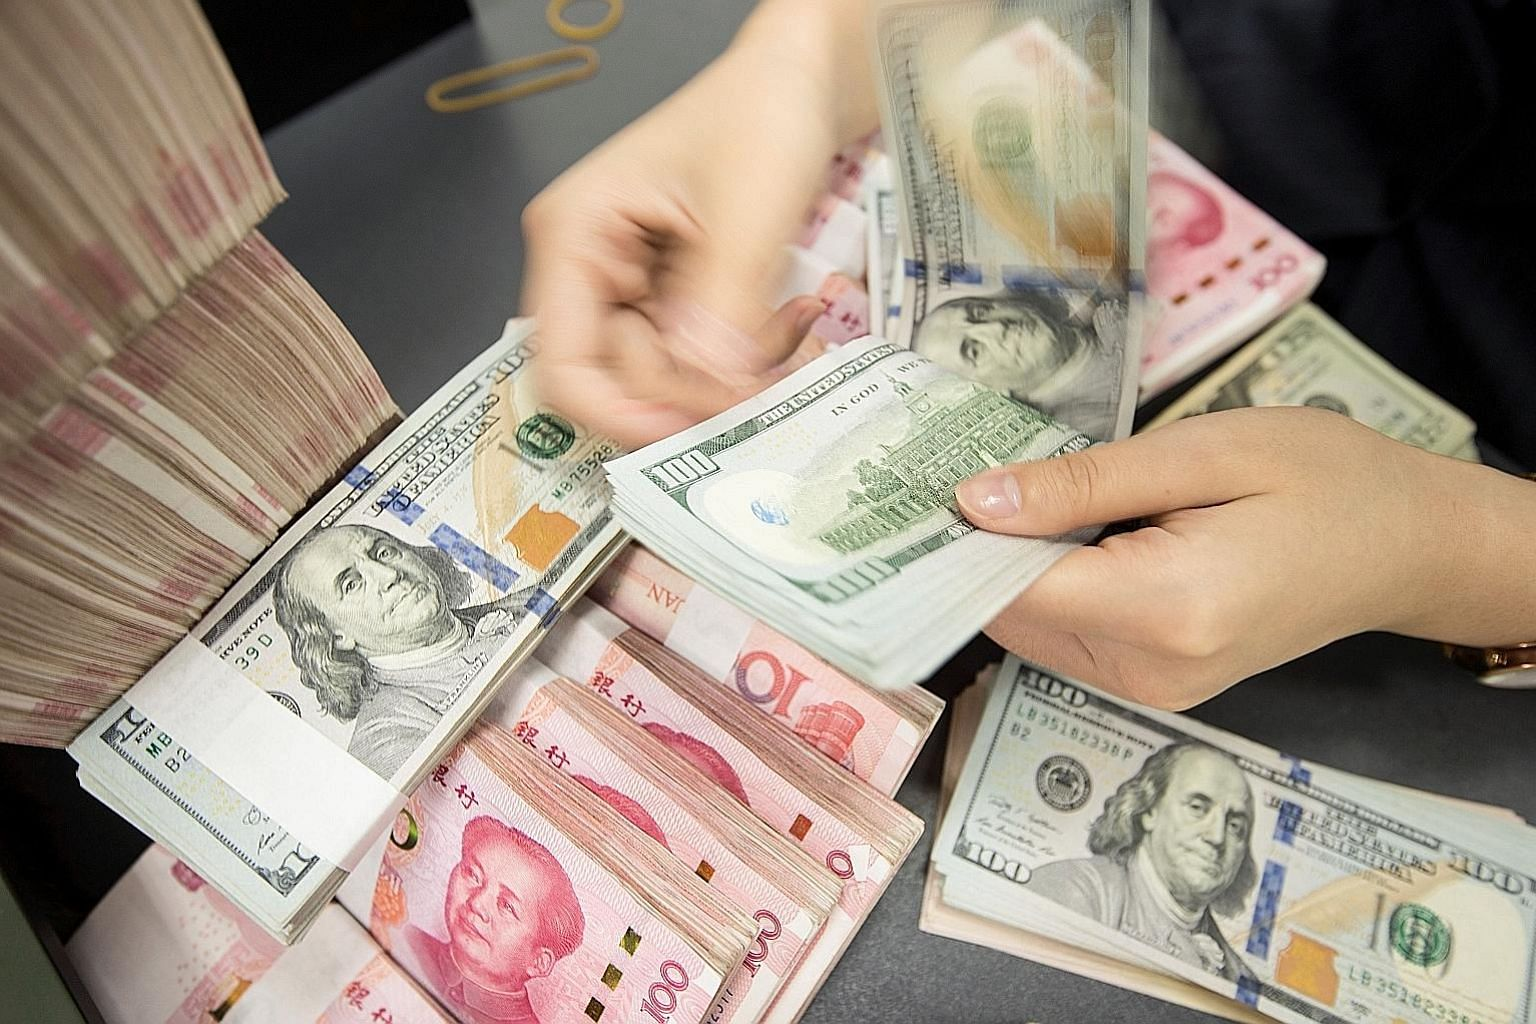 """The US Treasury Department said the phase one deal requires """"structural reforms and other changes to China's economic and trade regime in several key areas, including currency and foreign exchange issues"""". PHOTO: AGENCE FRANCE-PRESSE"""